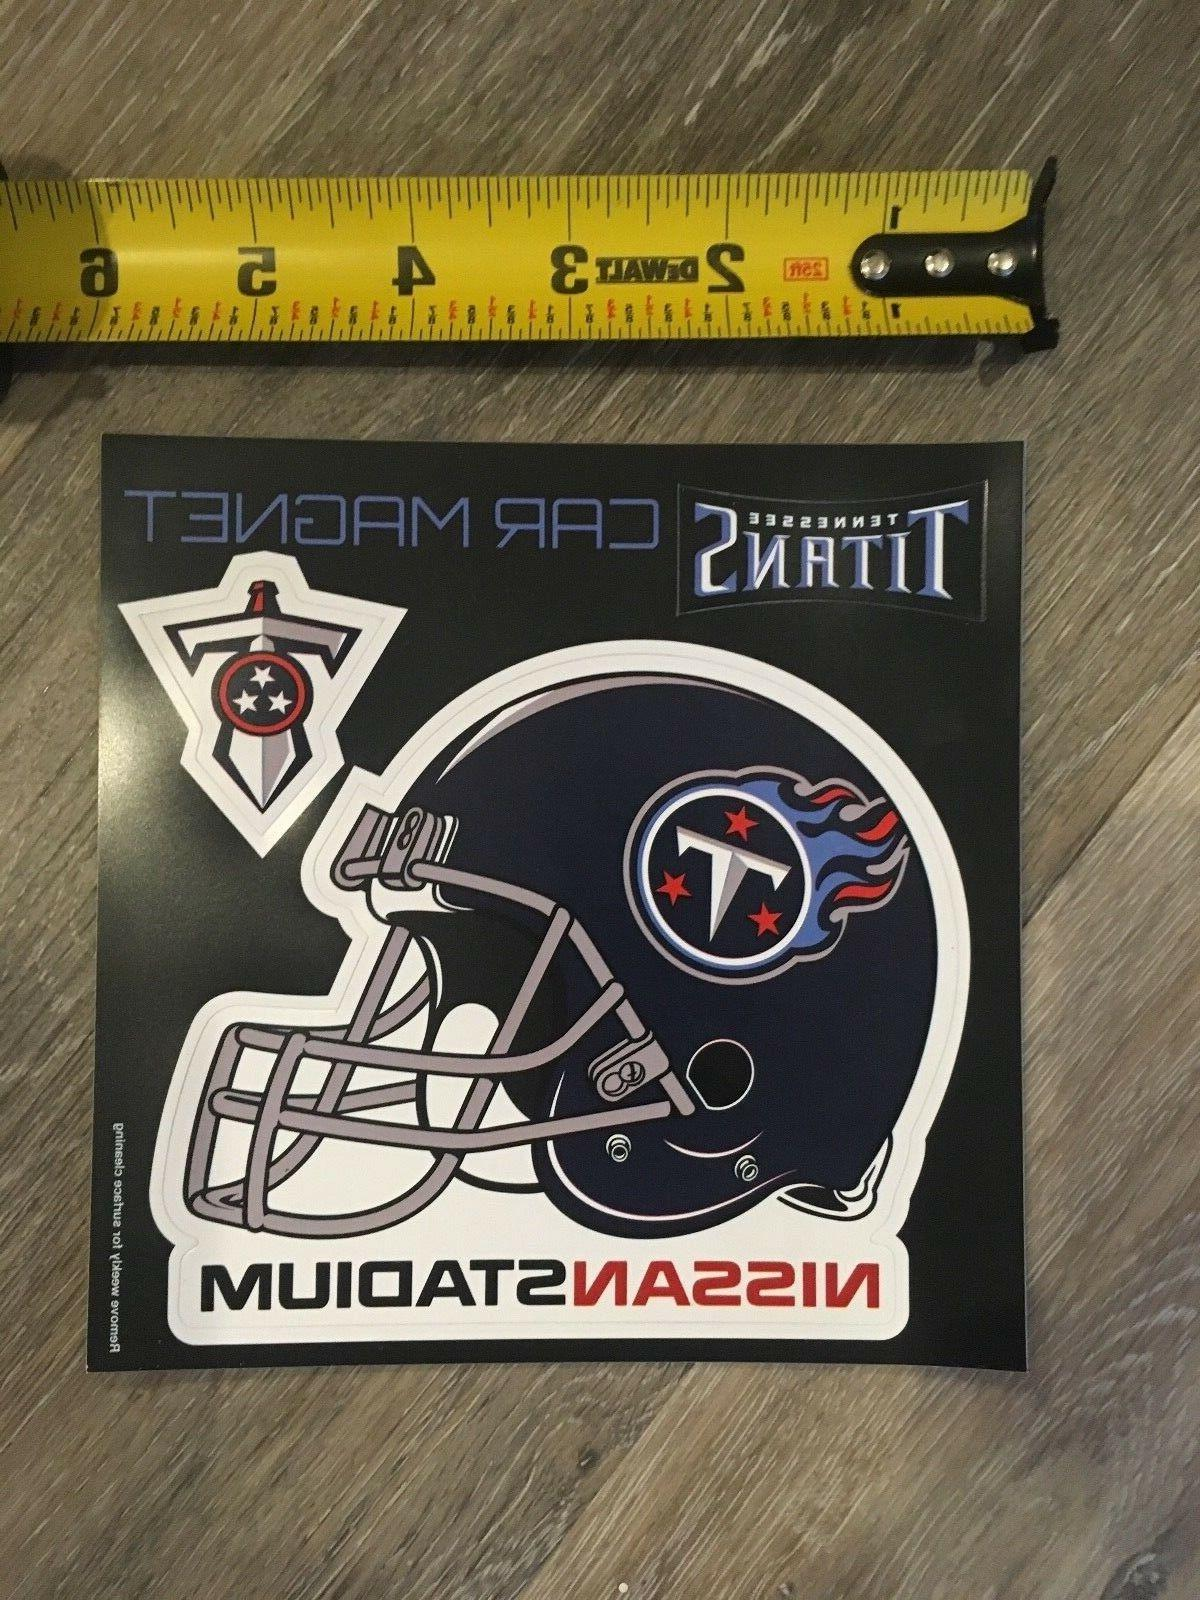 new nfl tennessee titans car magnet helmet